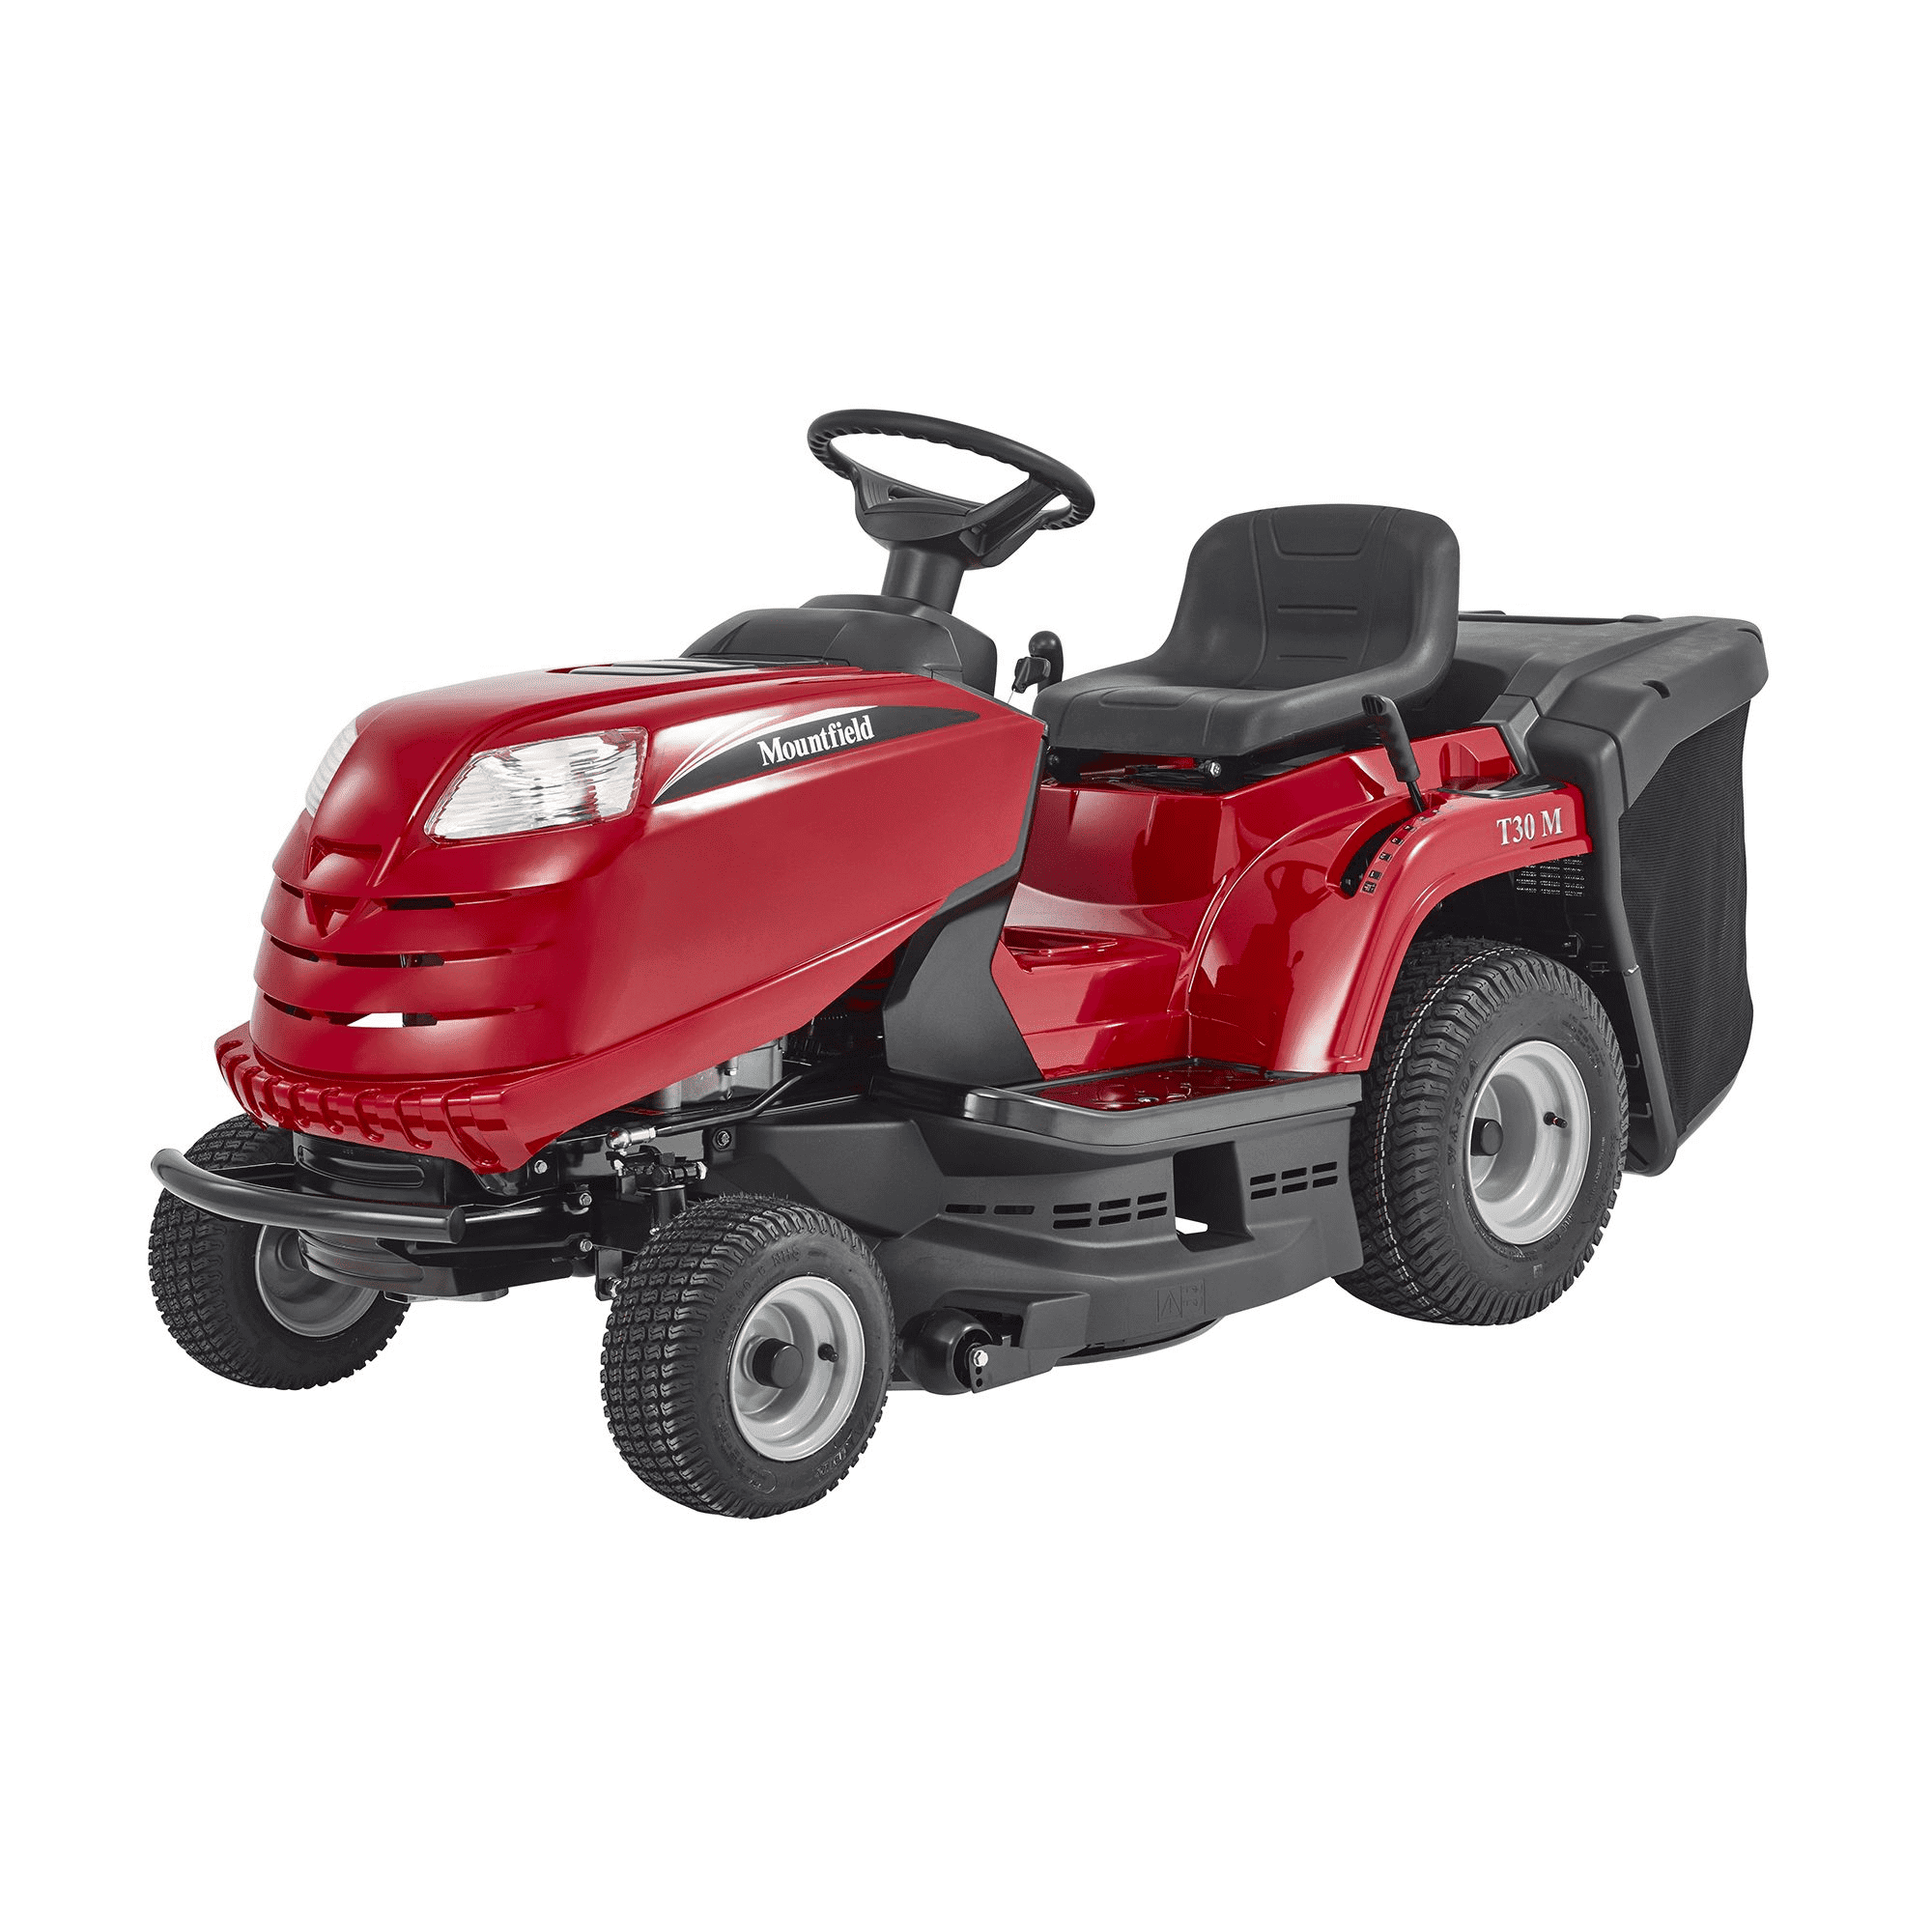 Mountfield T30M Lawn Tractor  -422cc